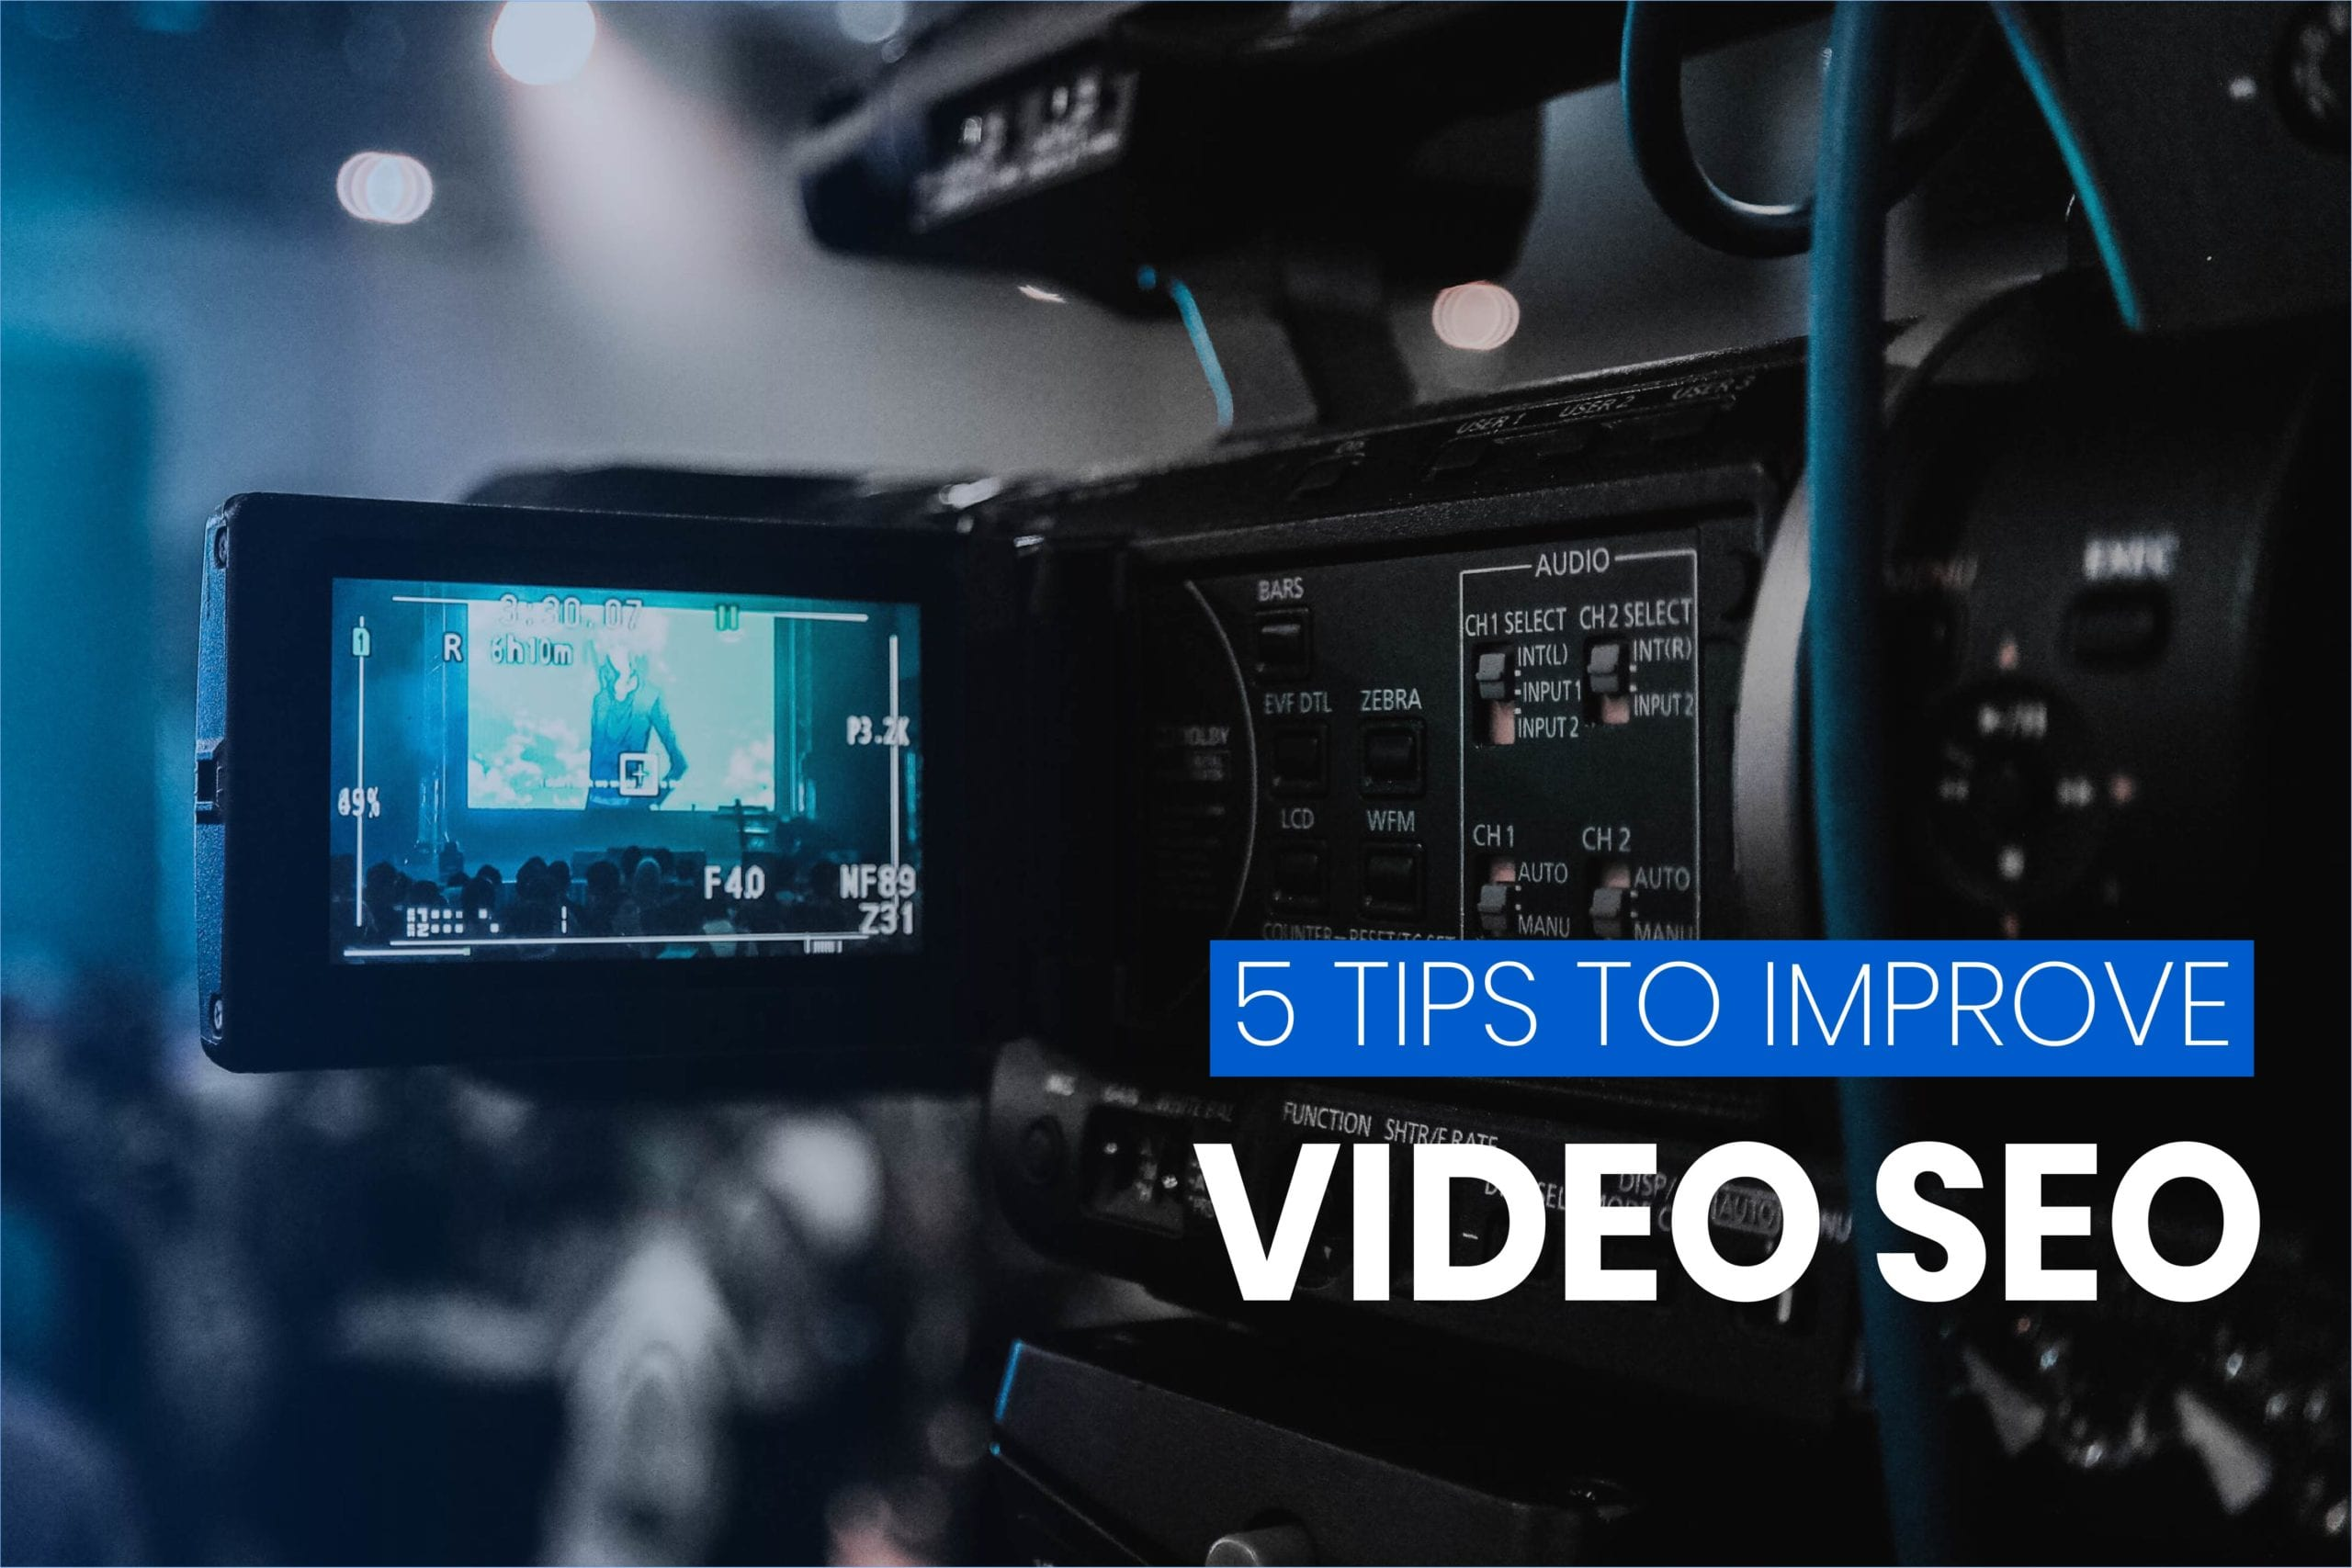 5 Simple Ways to Improve Video SEO